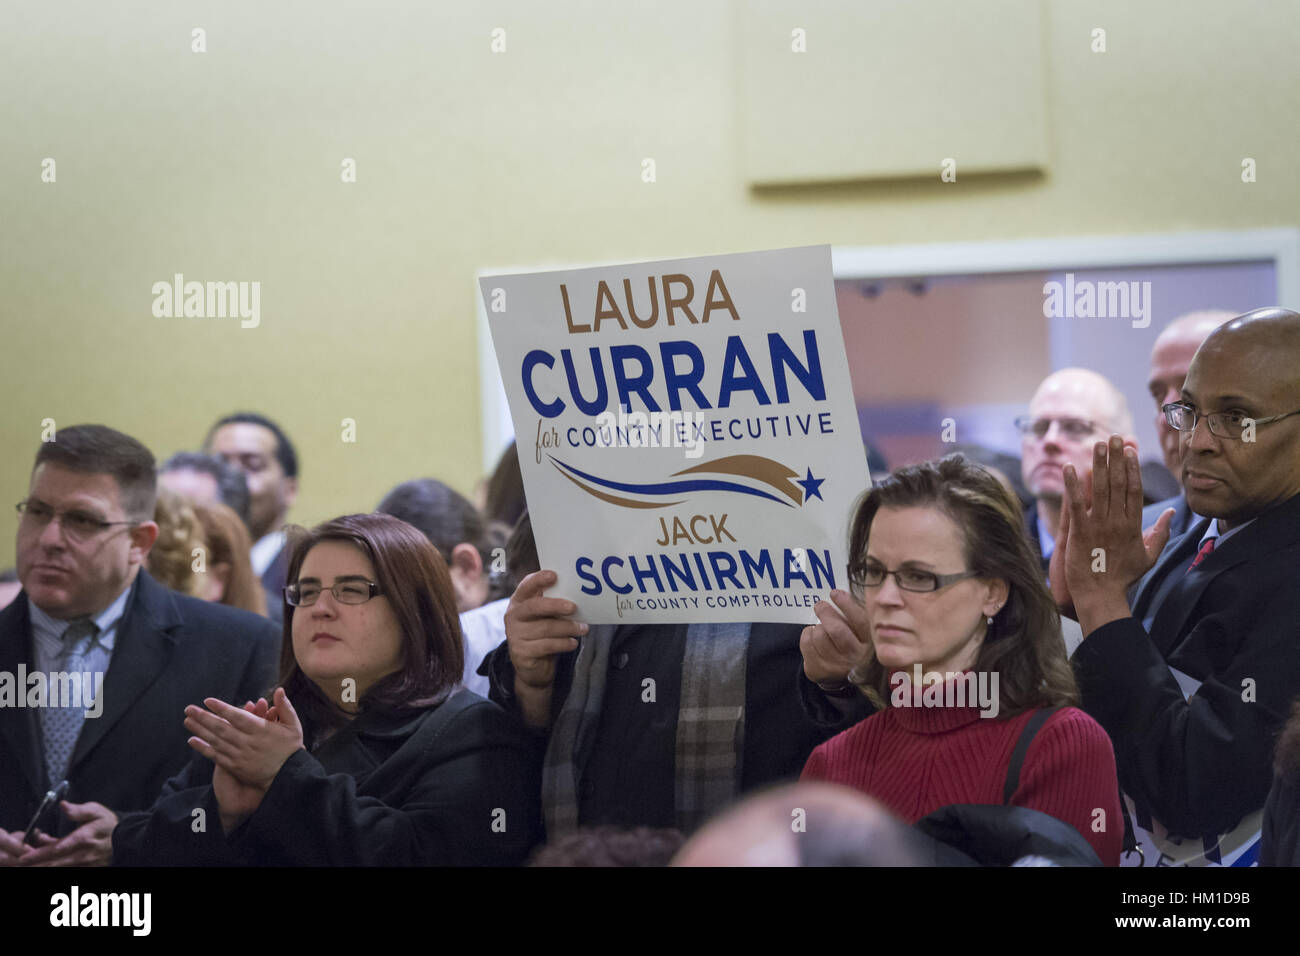 Uniondale, USA. 30th Jan, 2017. Audience members clap and hold up signs supporting Laura Curran, candidate for Nassau - Stock Image